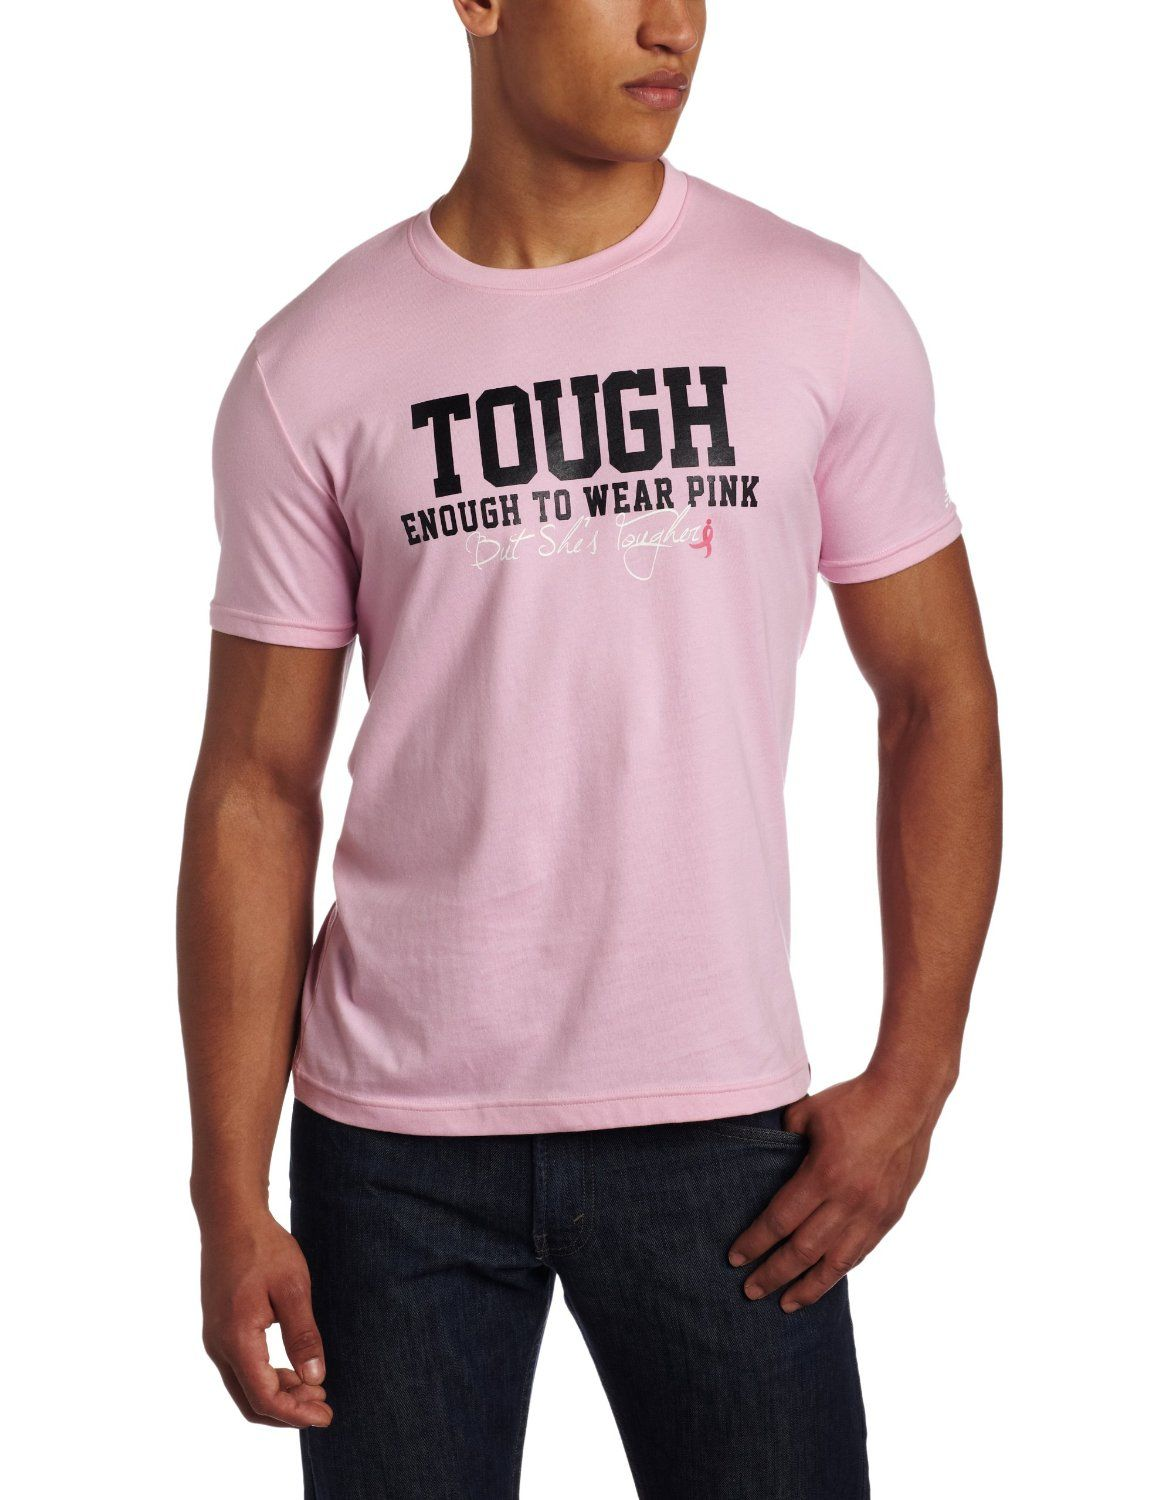 06db90d0 Amazon.com: New Balance Mens Shes Tougher Tee: Sports & Outdoors ($9.41-$19.95)